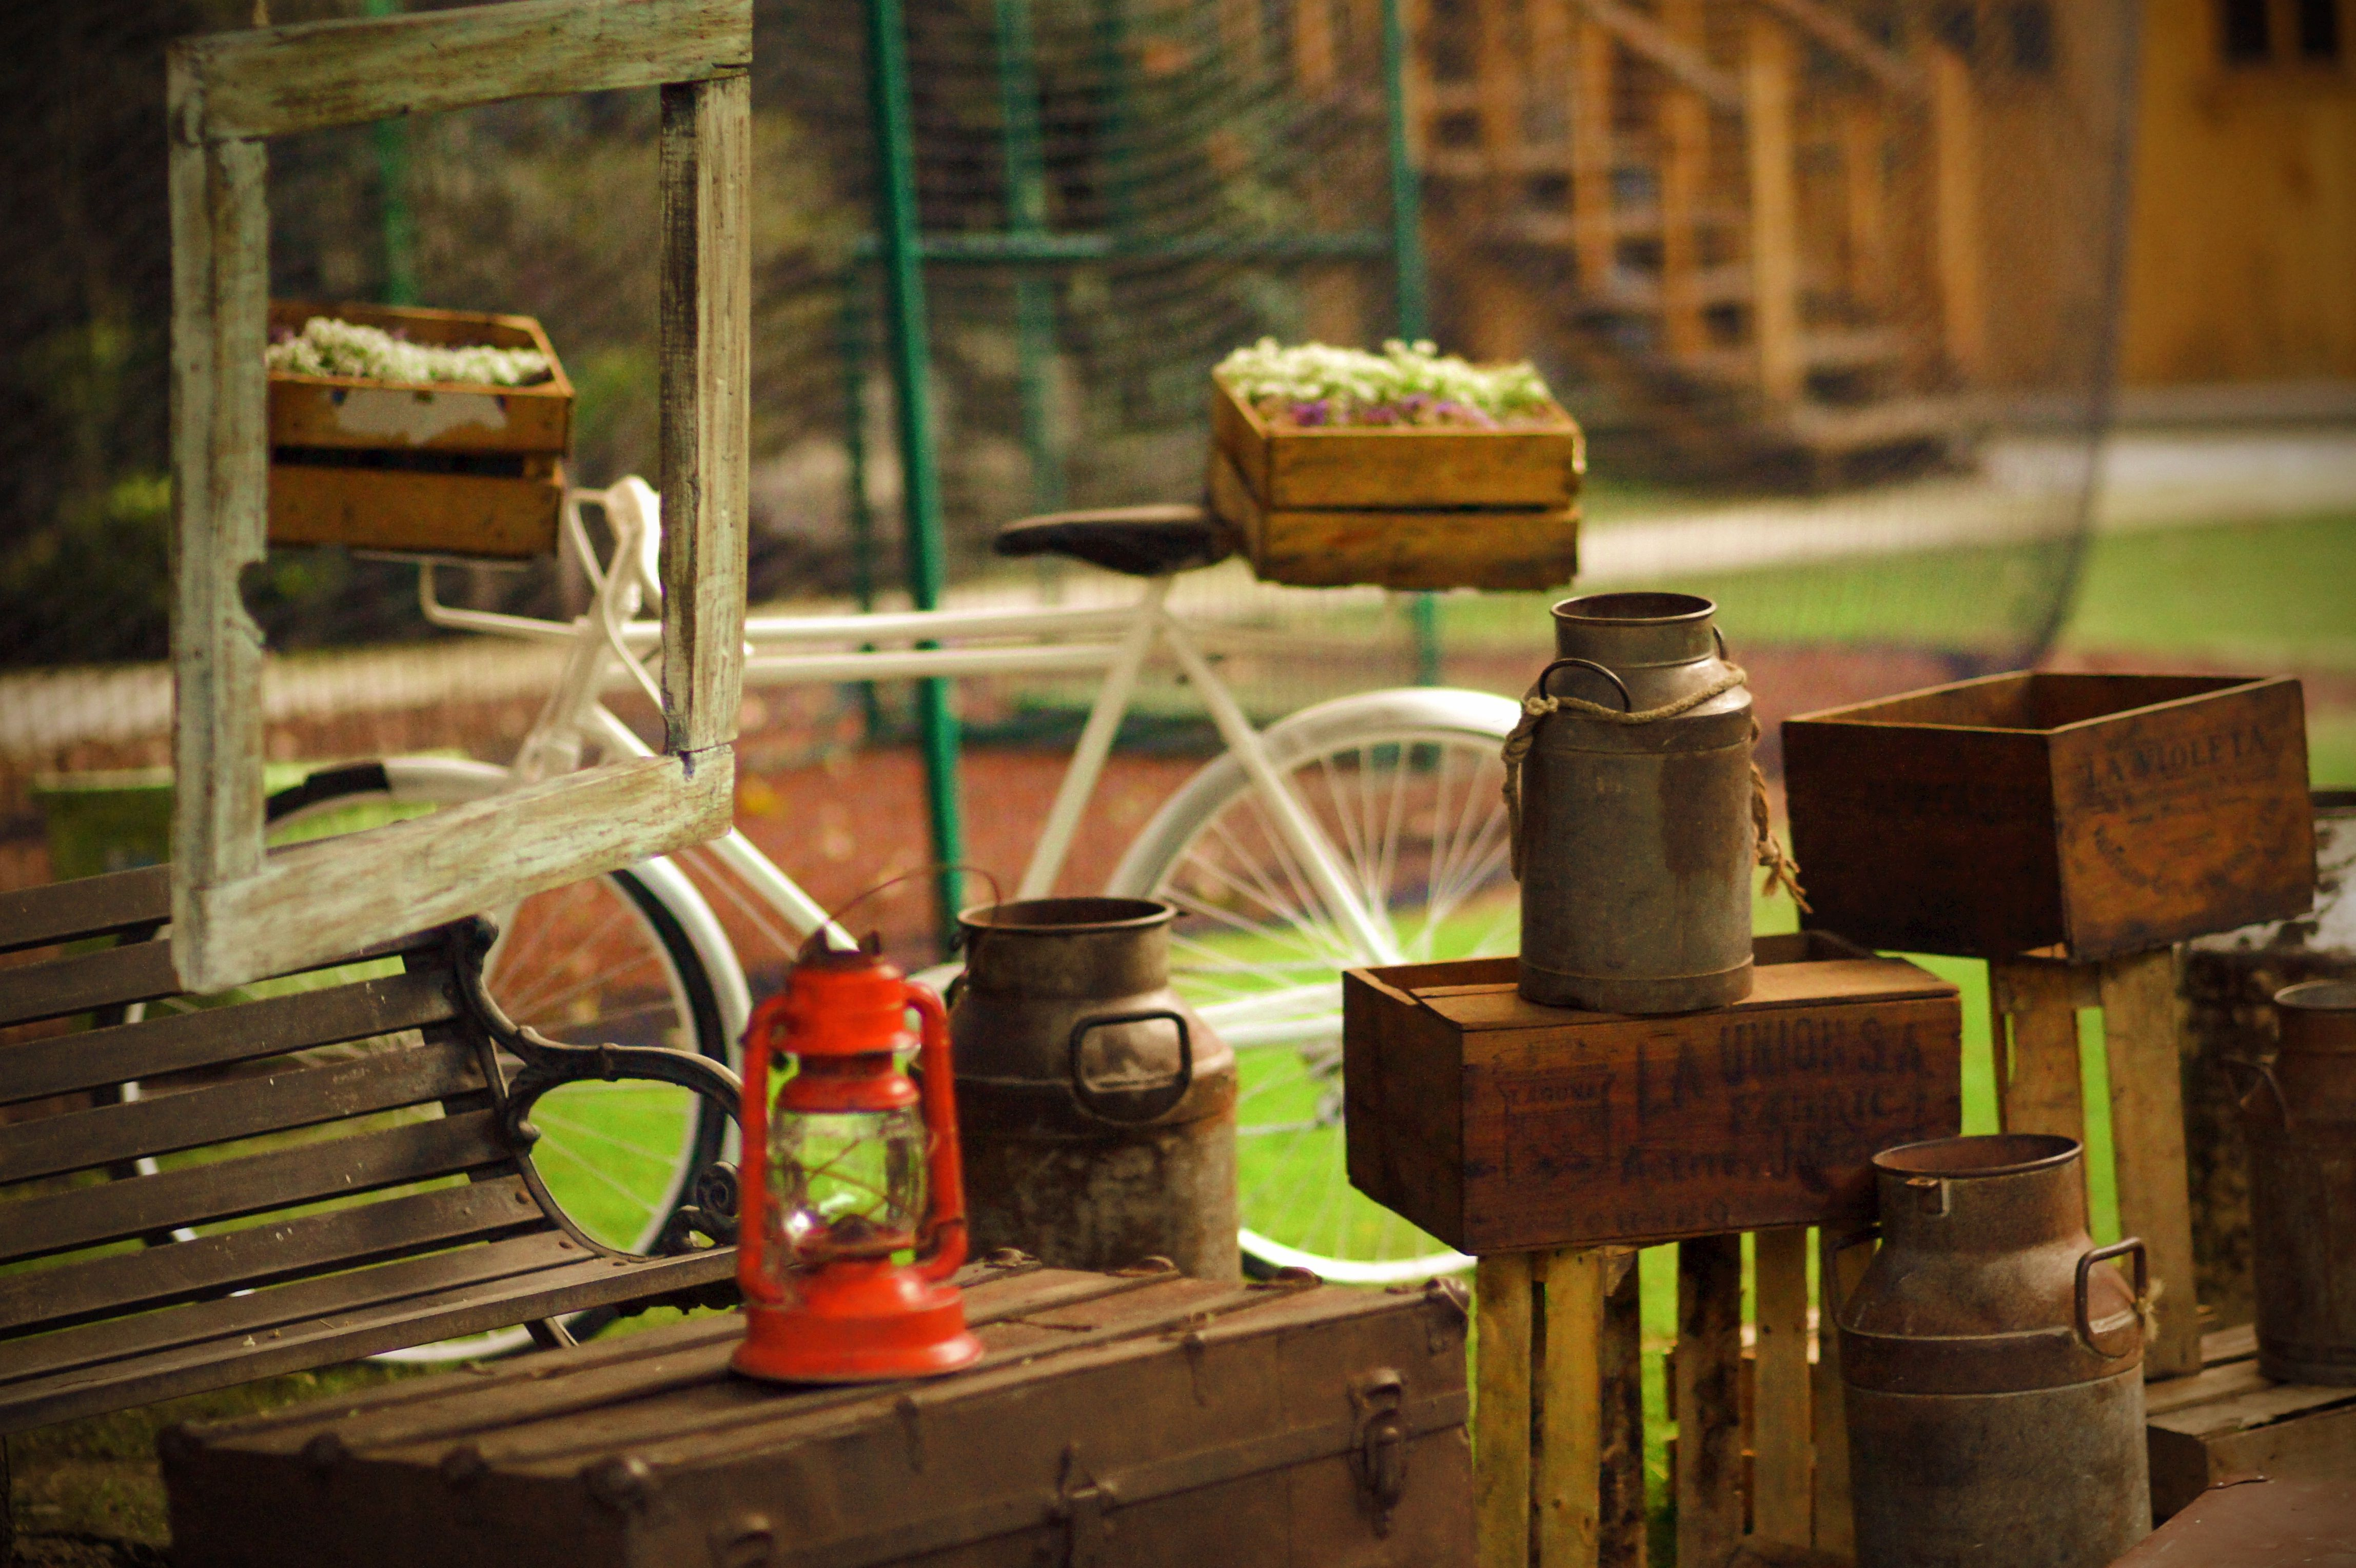 Country, vintage, rustic, milk cans, bicycle, frames, flowers, outdoors, bench. www.couturerentals.com.mx